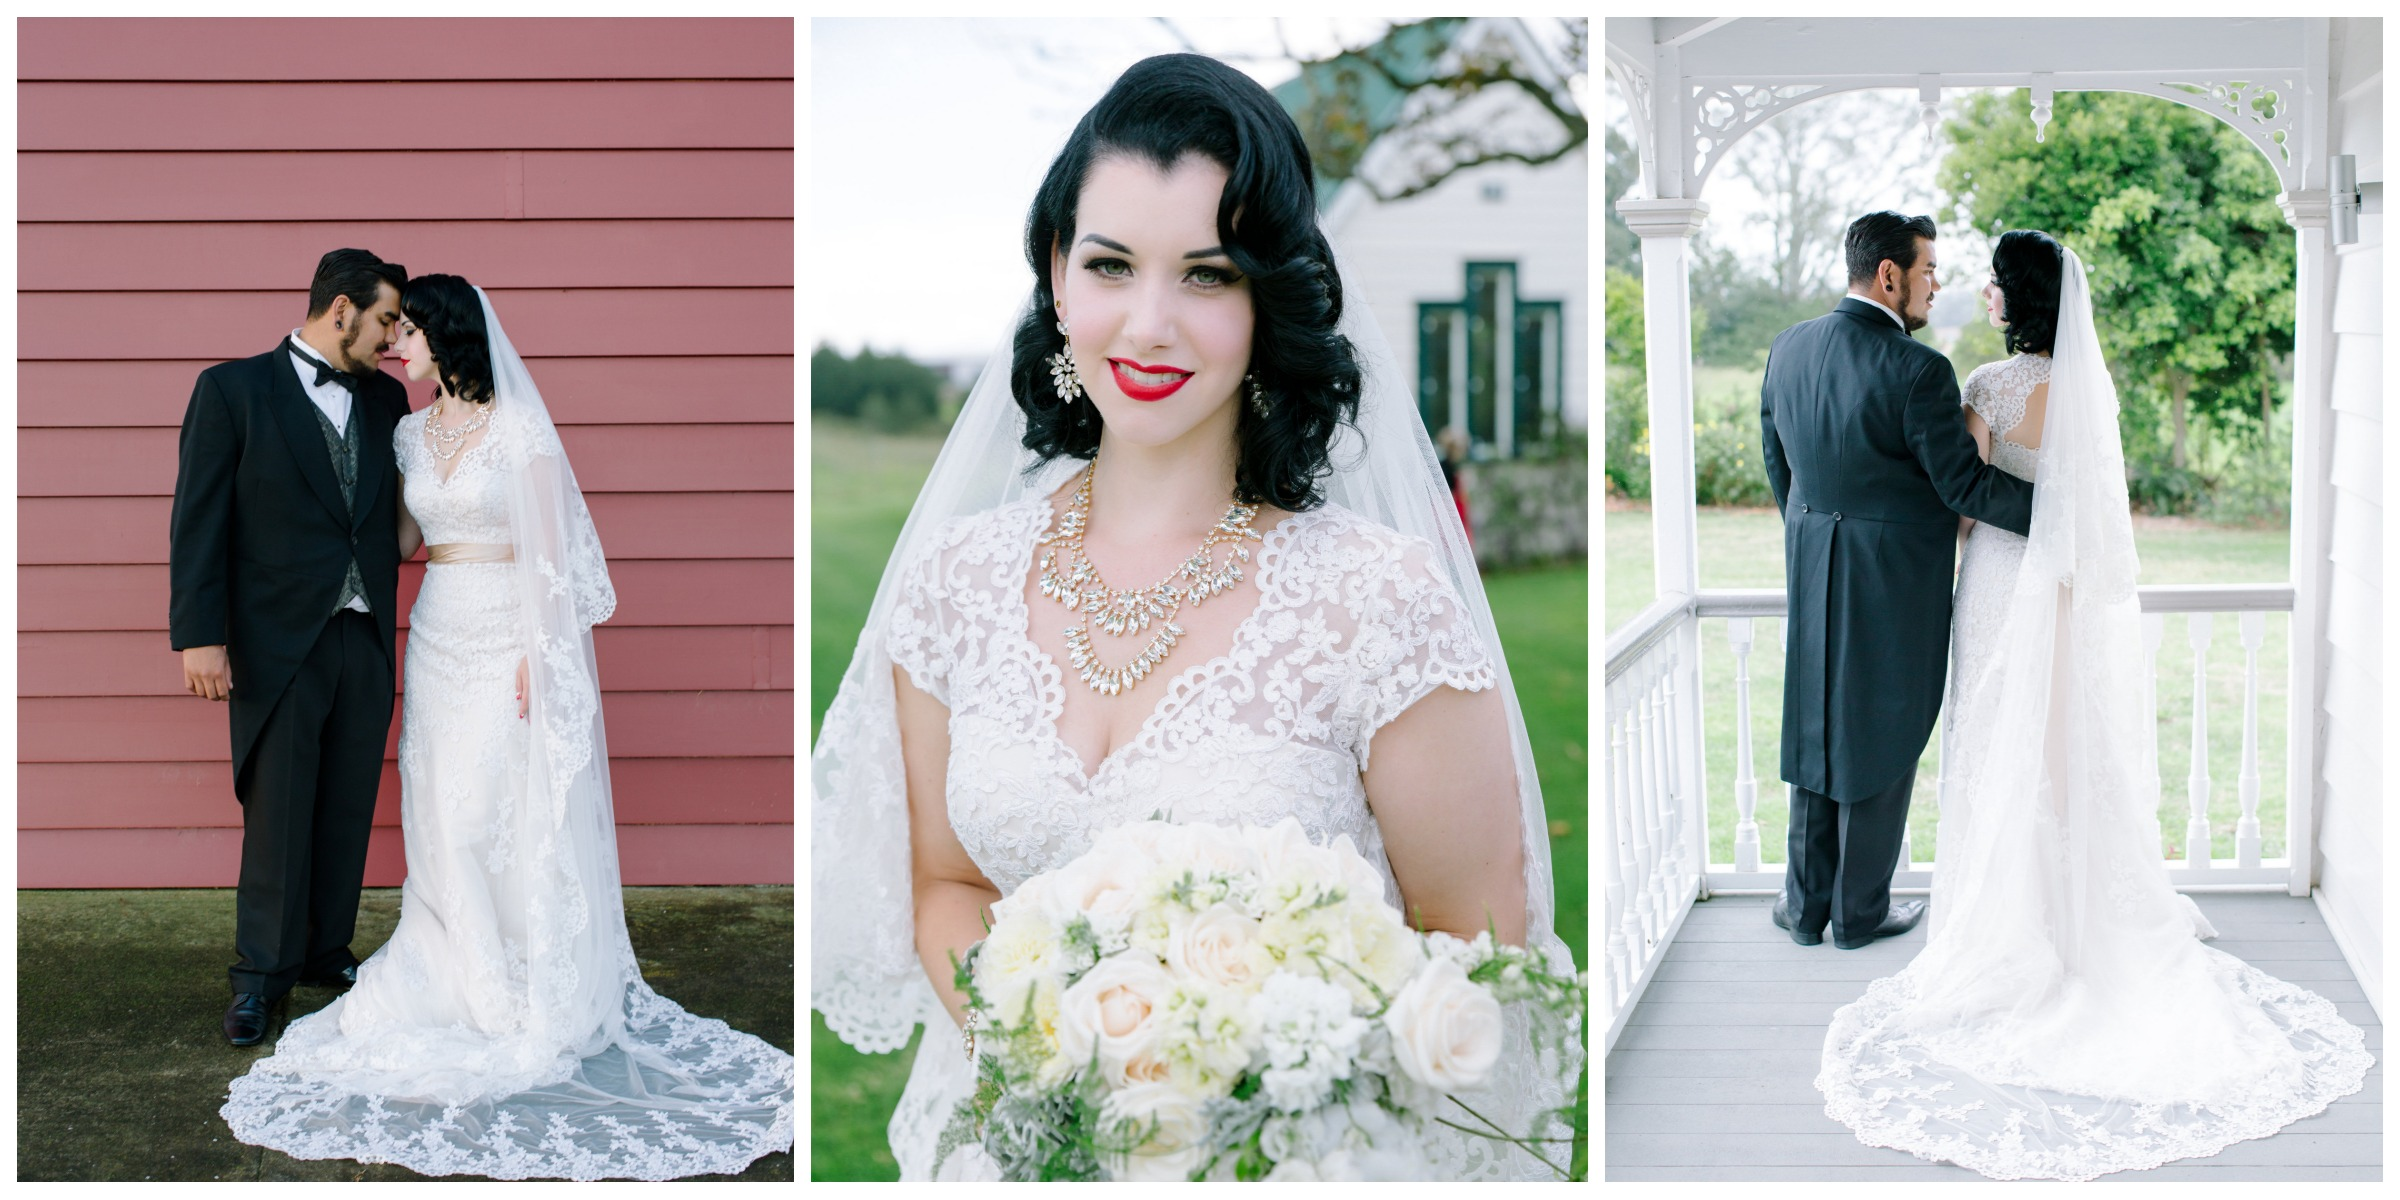 A Very Vintage Wedding Dress- Part One - Miss Victory Violet